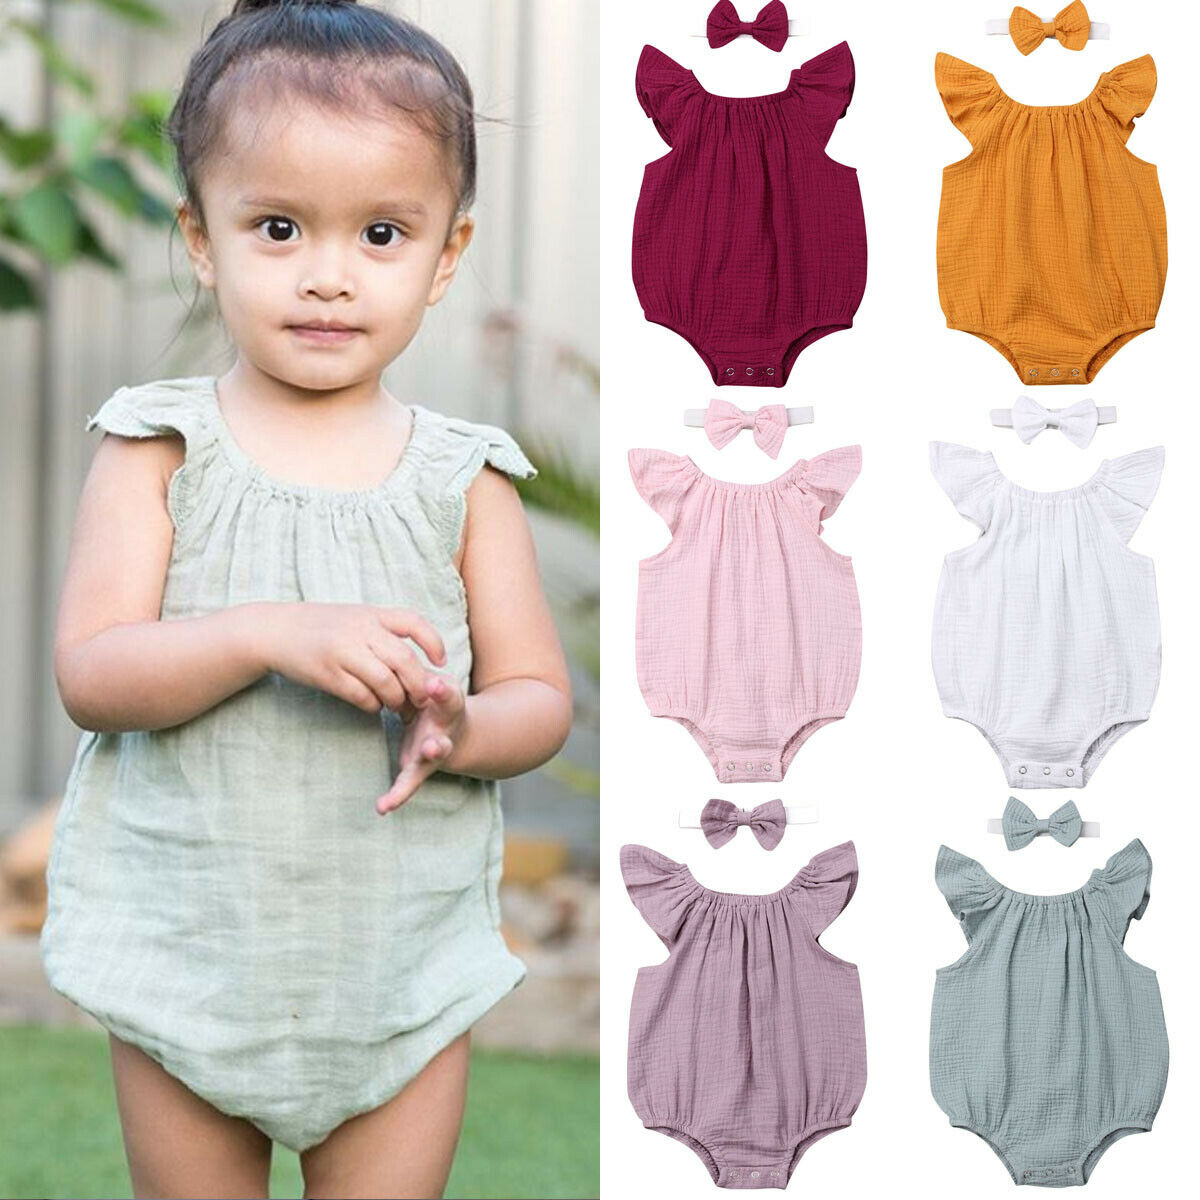 Newborn Baby Boy Girl Clothes Solid Color Cotton Sleeveless Bodysuits Jumpsuit Headband 2PCS Outfits Set